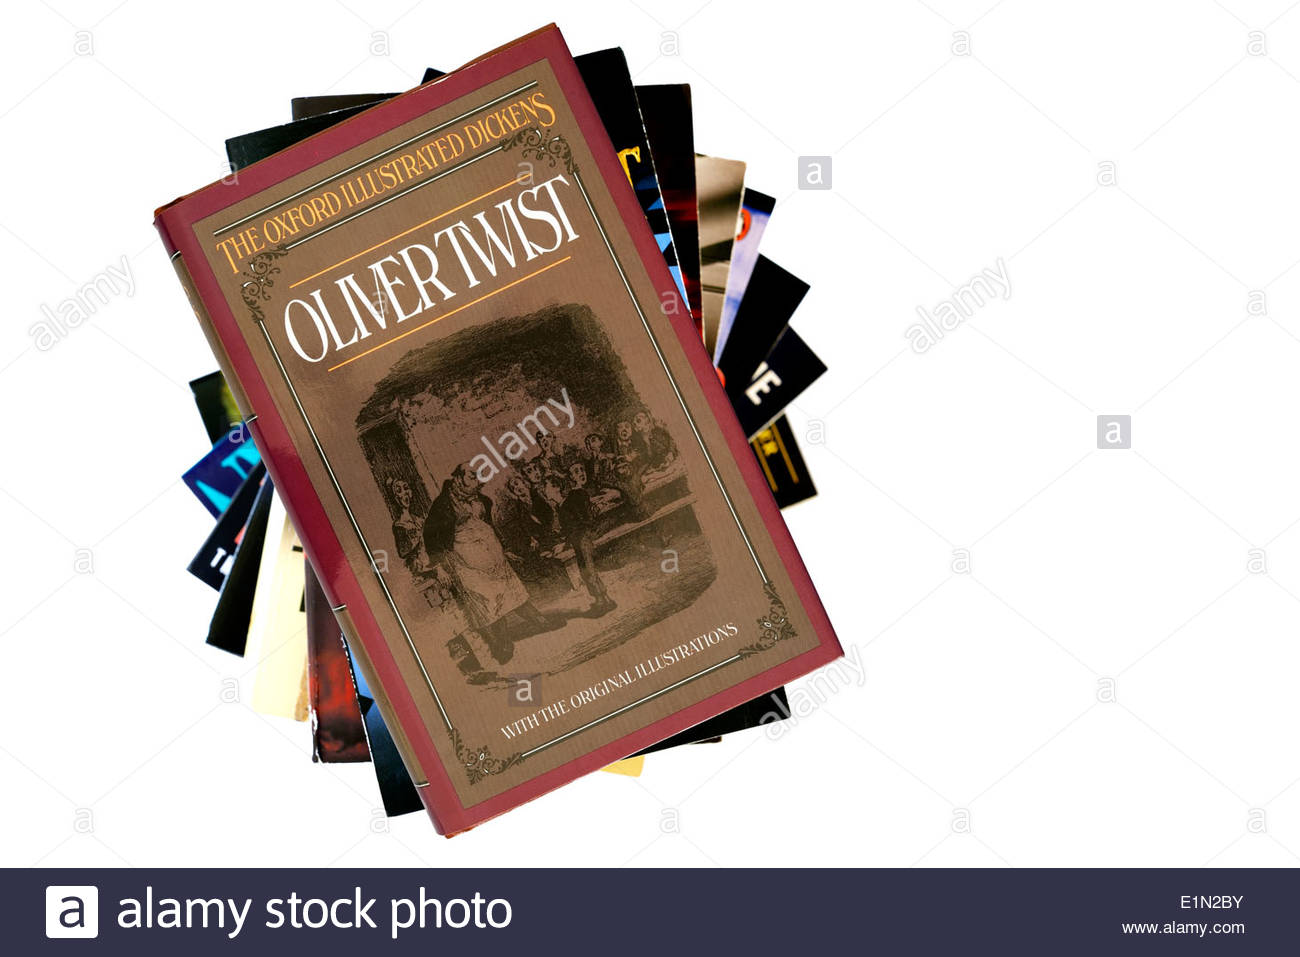 Charles Dickens novel, Oliver Twist, paperback title stacked used books, England - Stock Image